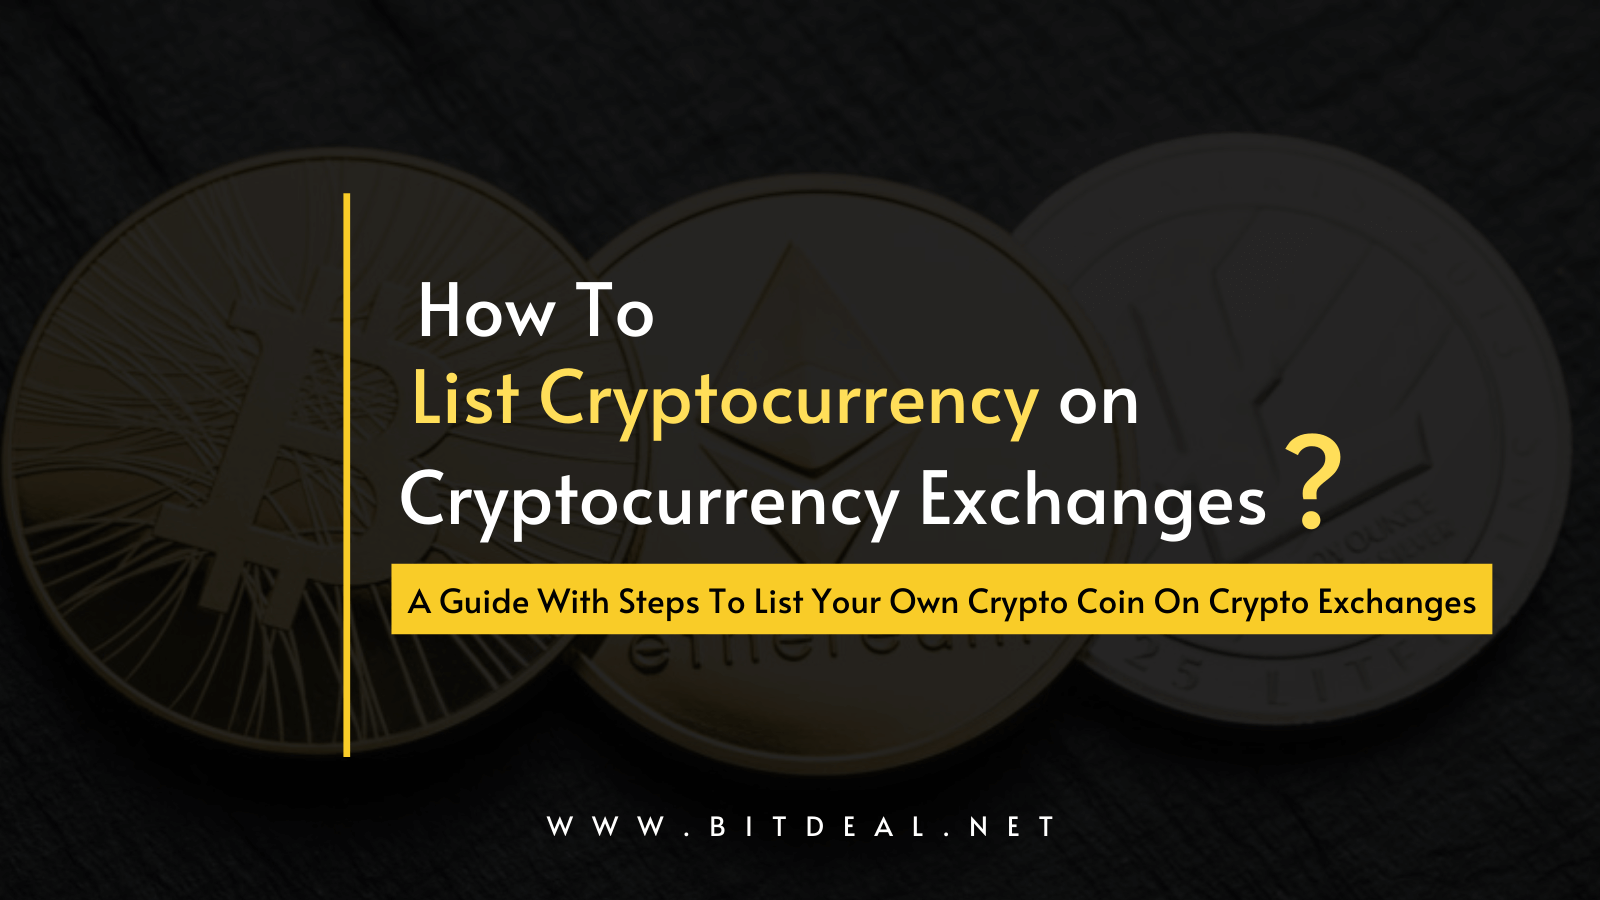 Steps To Build Your Crypto Coin On Exchange Platforms